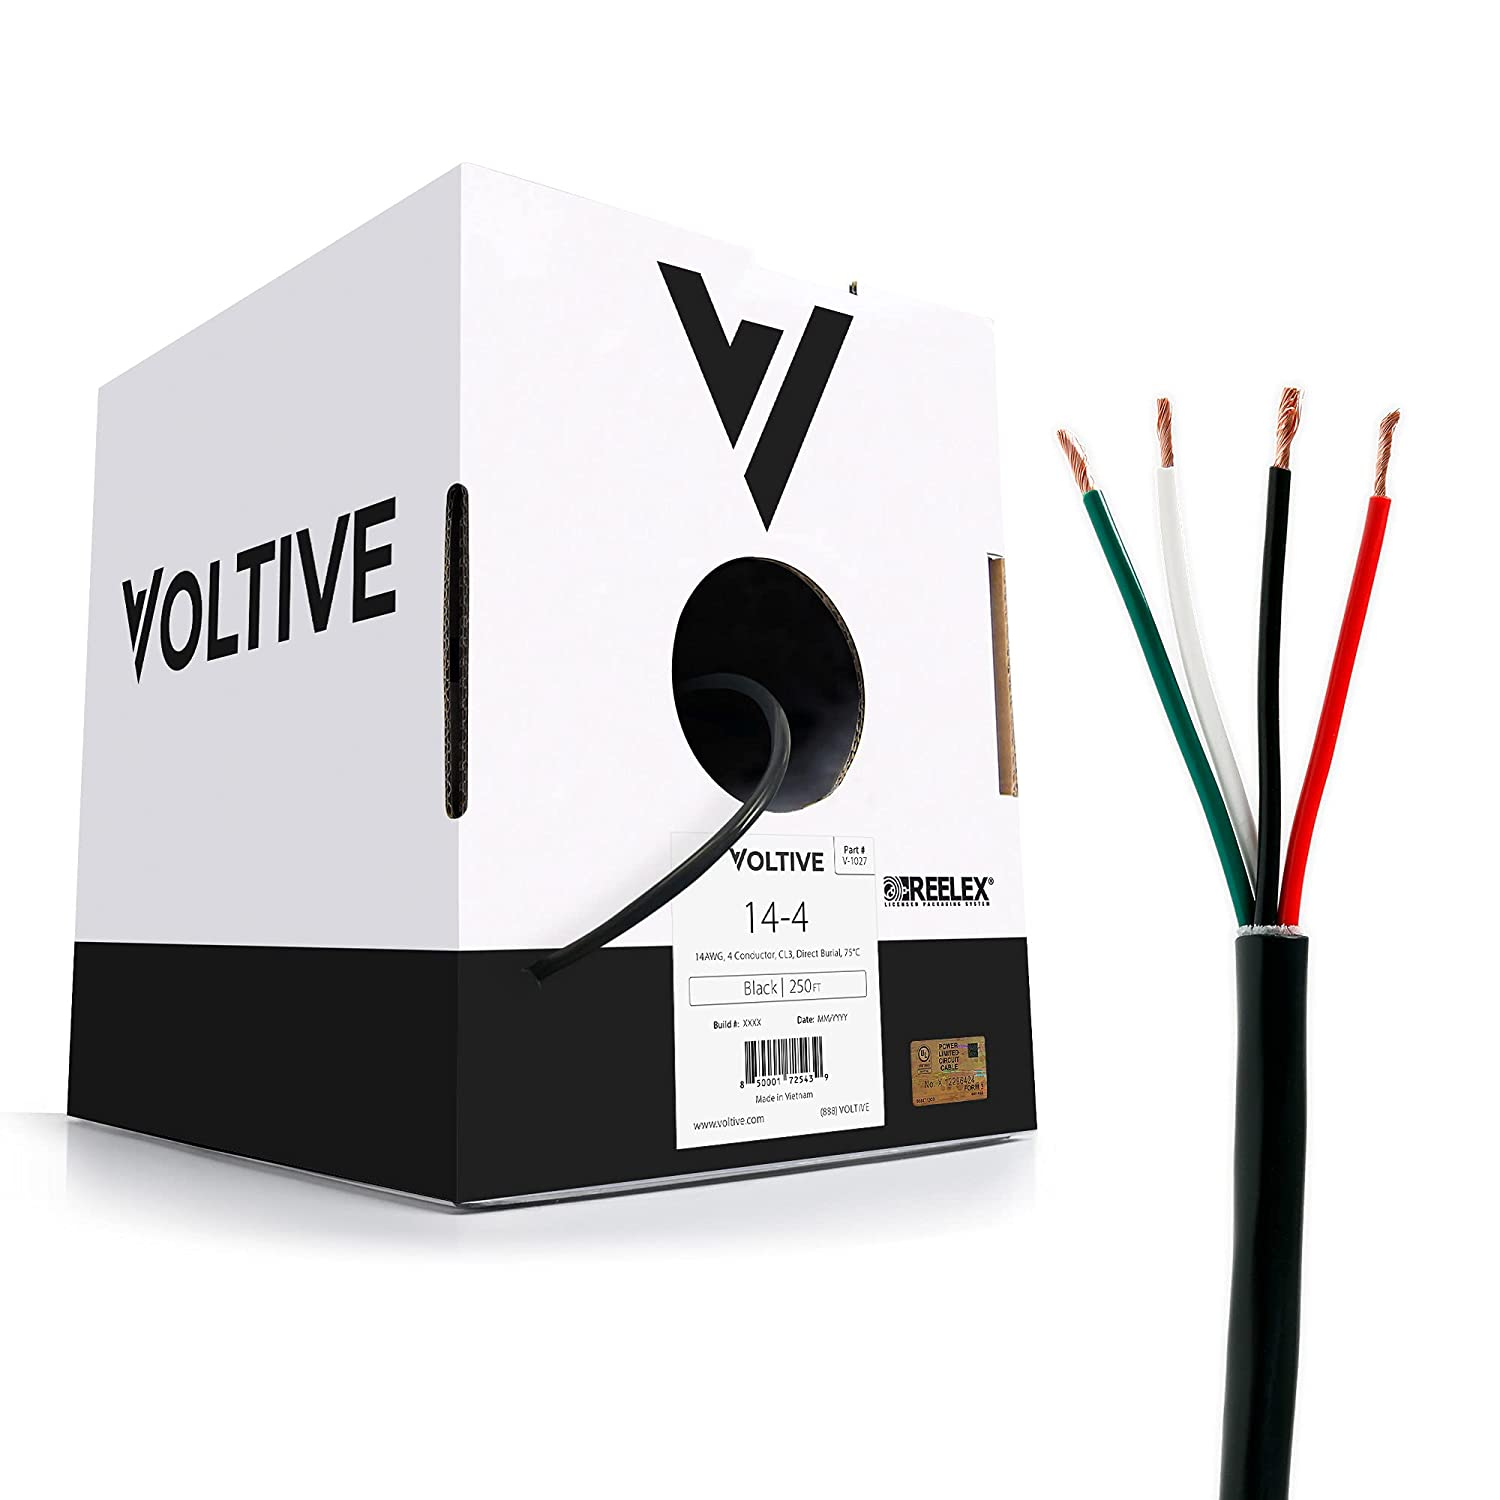 Voltive 14/4 Speaker Wire - 14 AWG/Gauge 4 Conductor - UL Listed in Wall (CL2/CL3) and Outdoor/In Ground (Direct Burial) Rated - Oxygen-Free Copper (OFC) - 250 Foot Bulk Cable Pull Box - Black